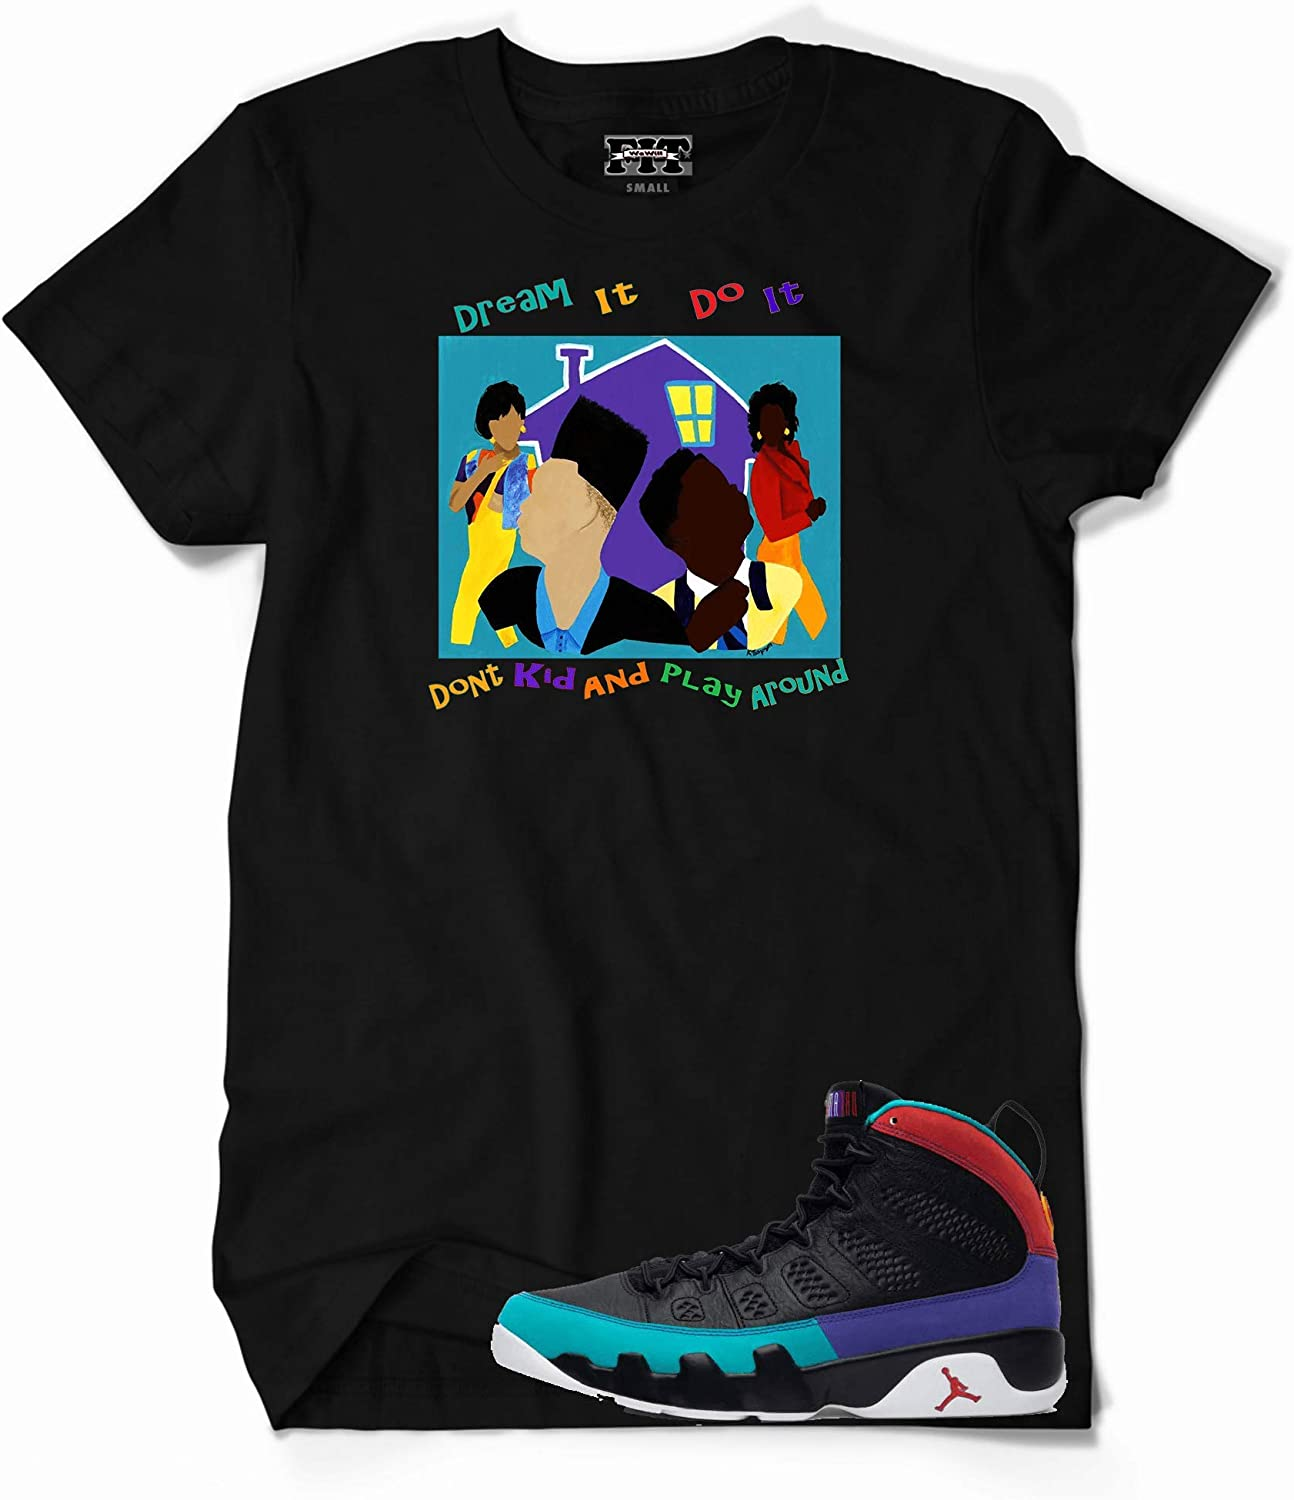 We Will Fit House Party Shirt for The Jordan 9 IX Dream it Do It Flight Nostalgia